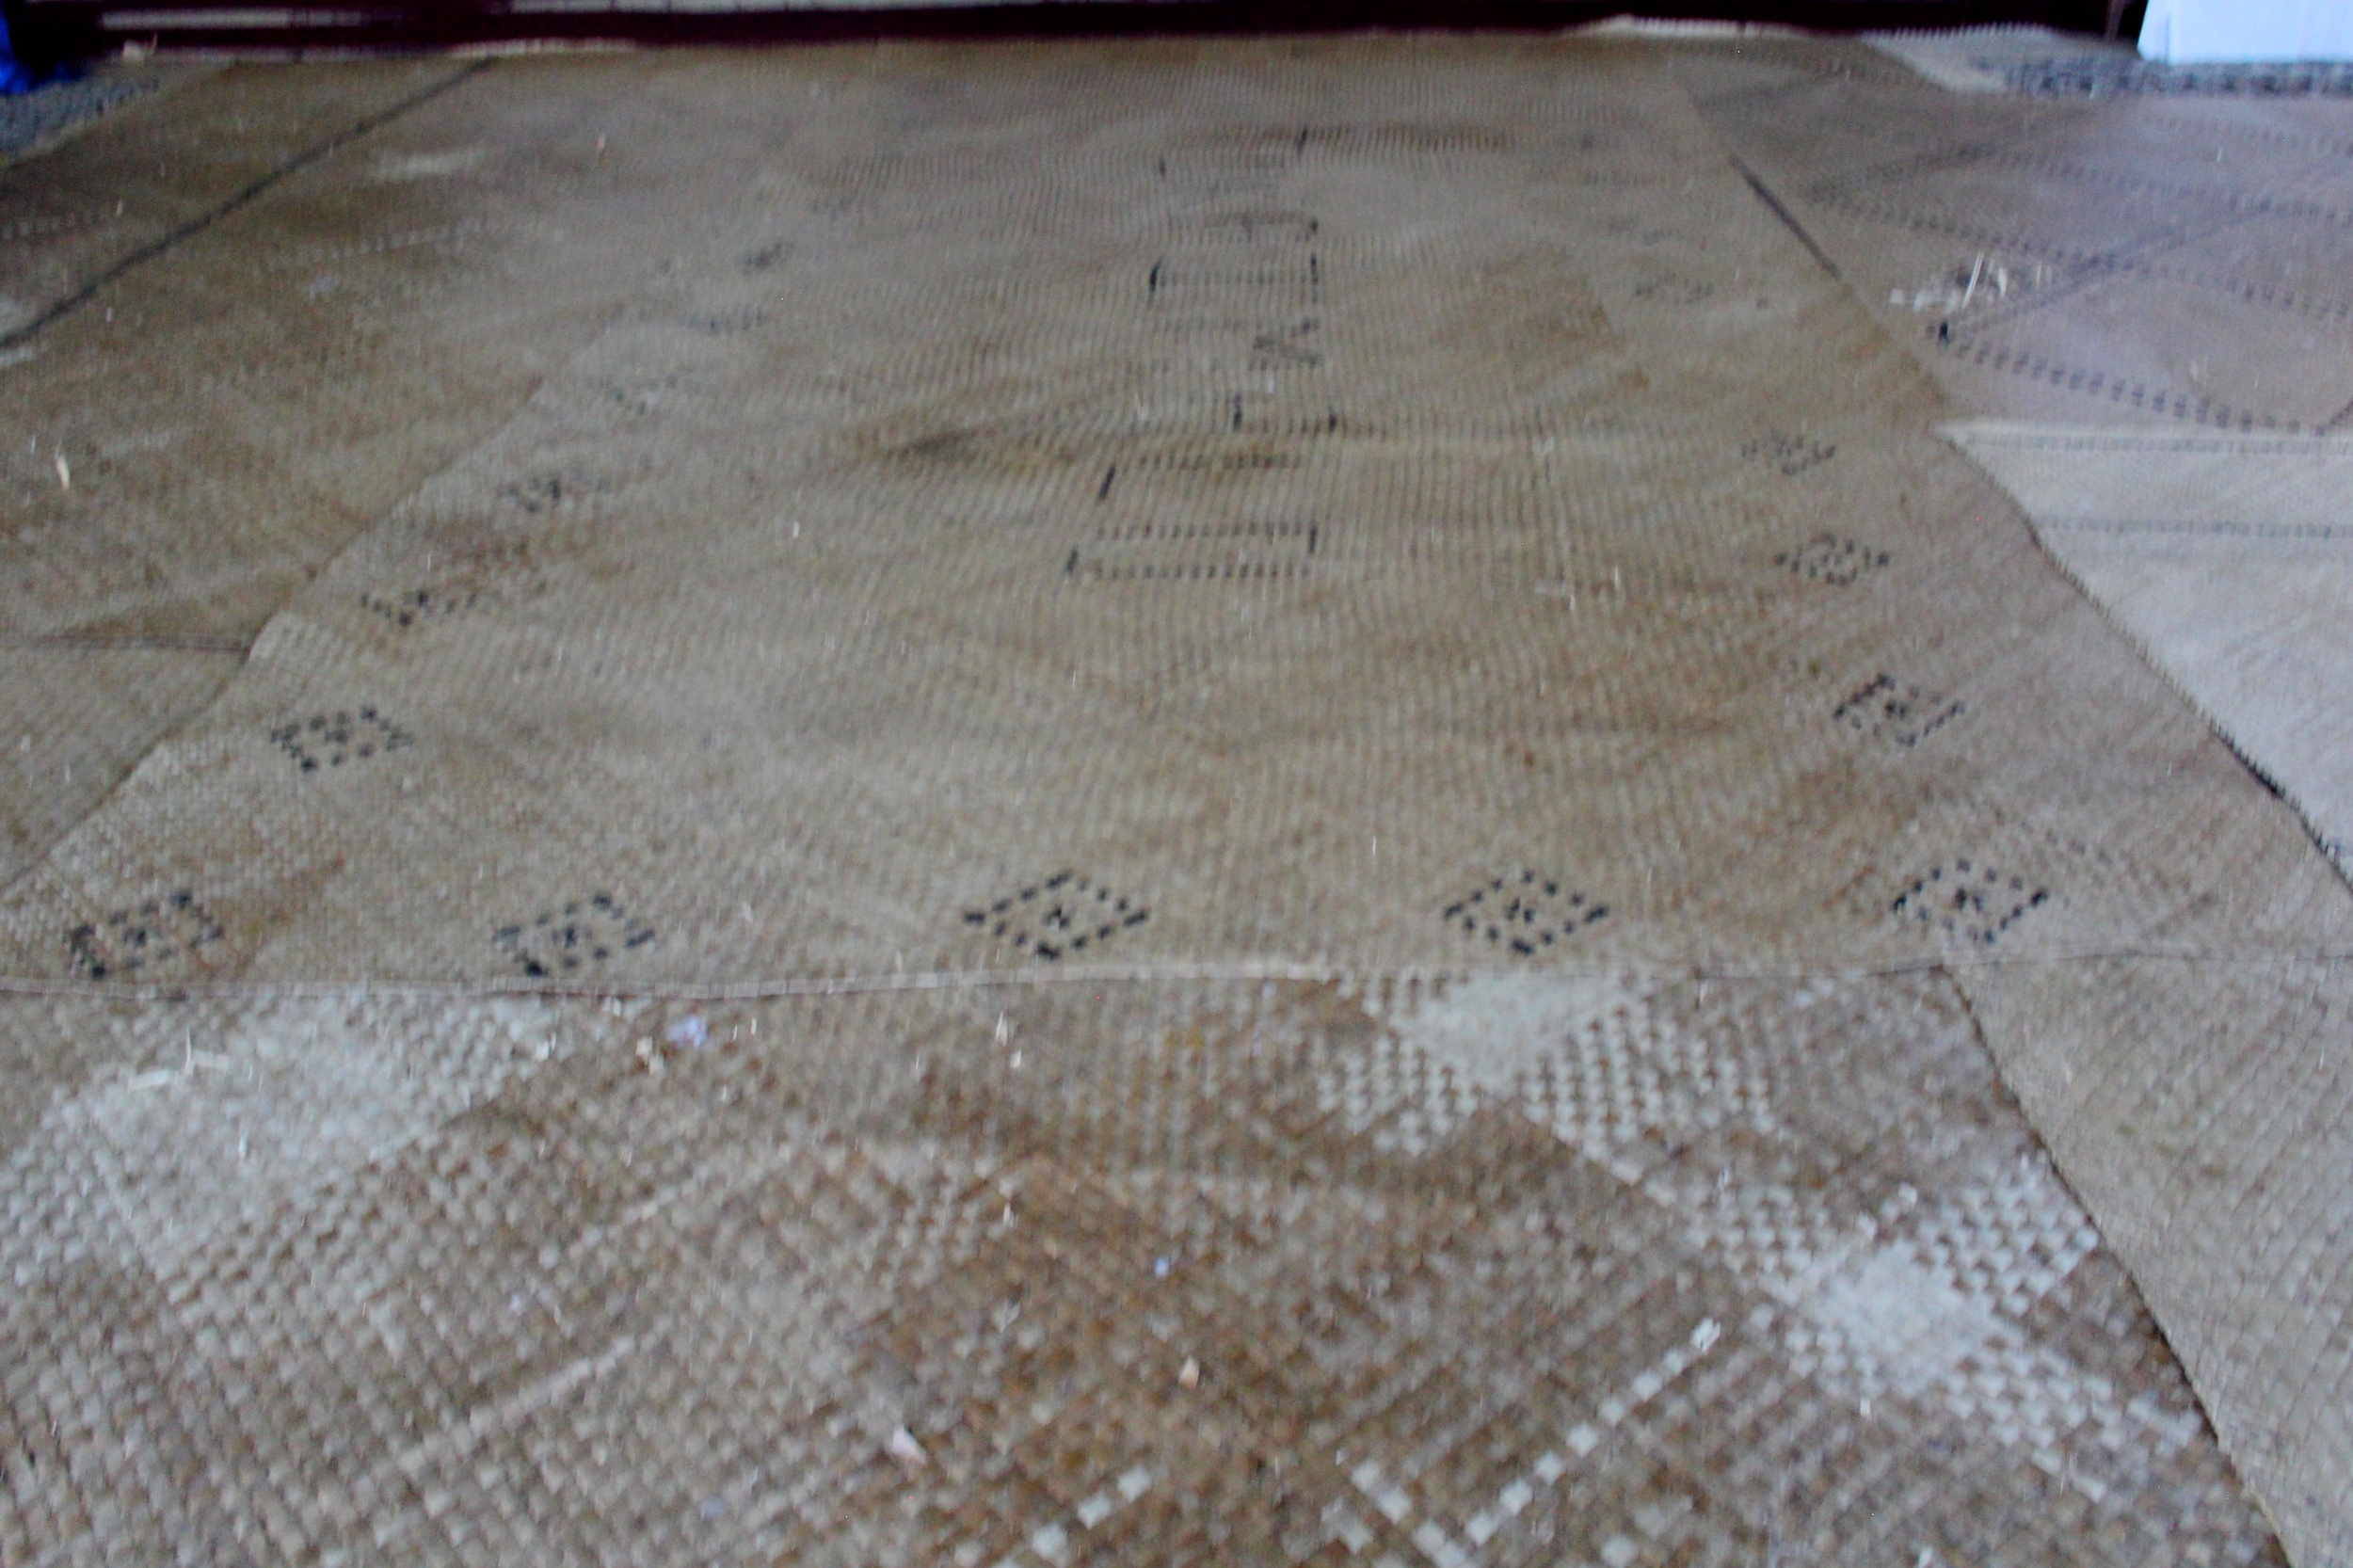 Woven mats covering the floor